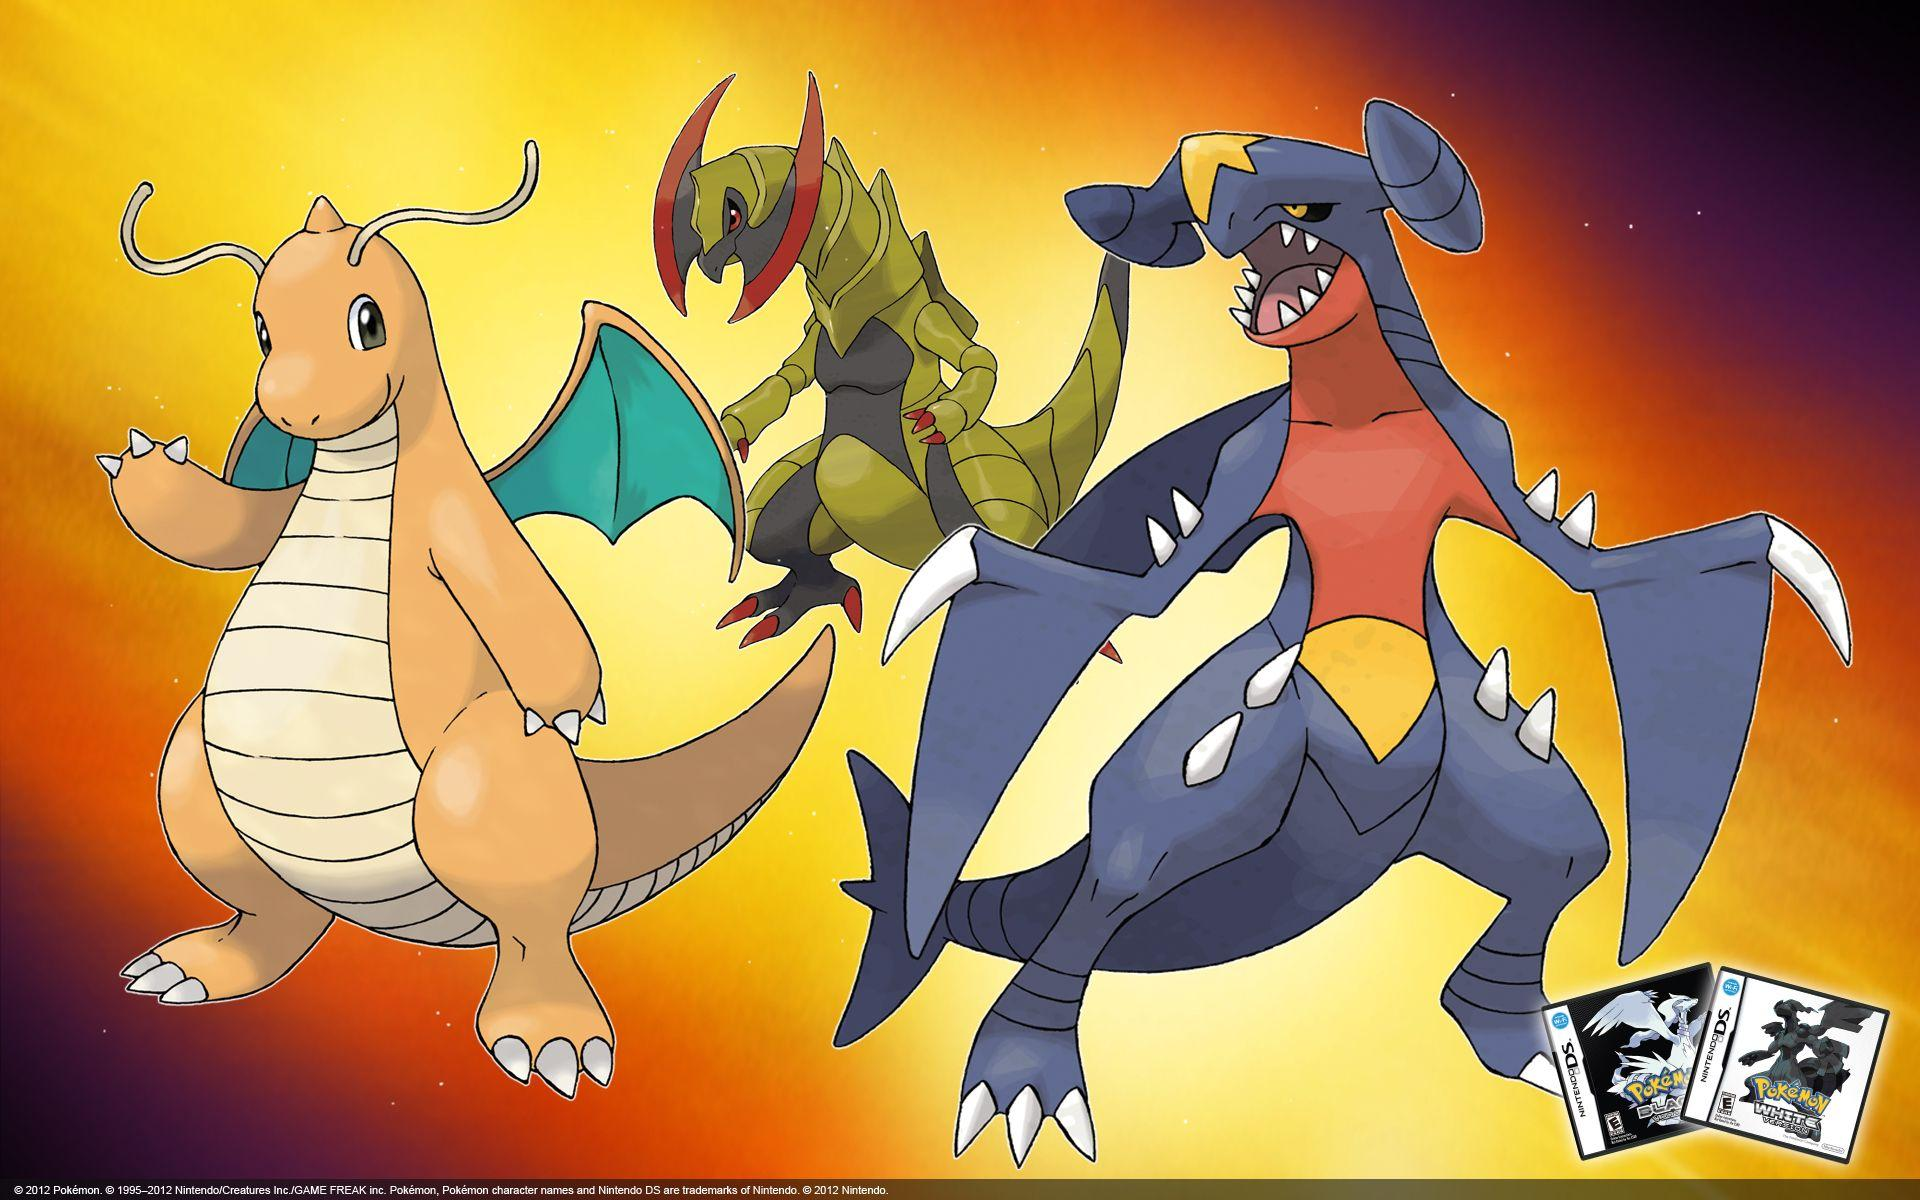 Dragon Pokemon Wallpapers, PC 44 Dragon Pokemon Wallpapers, NMgnCP